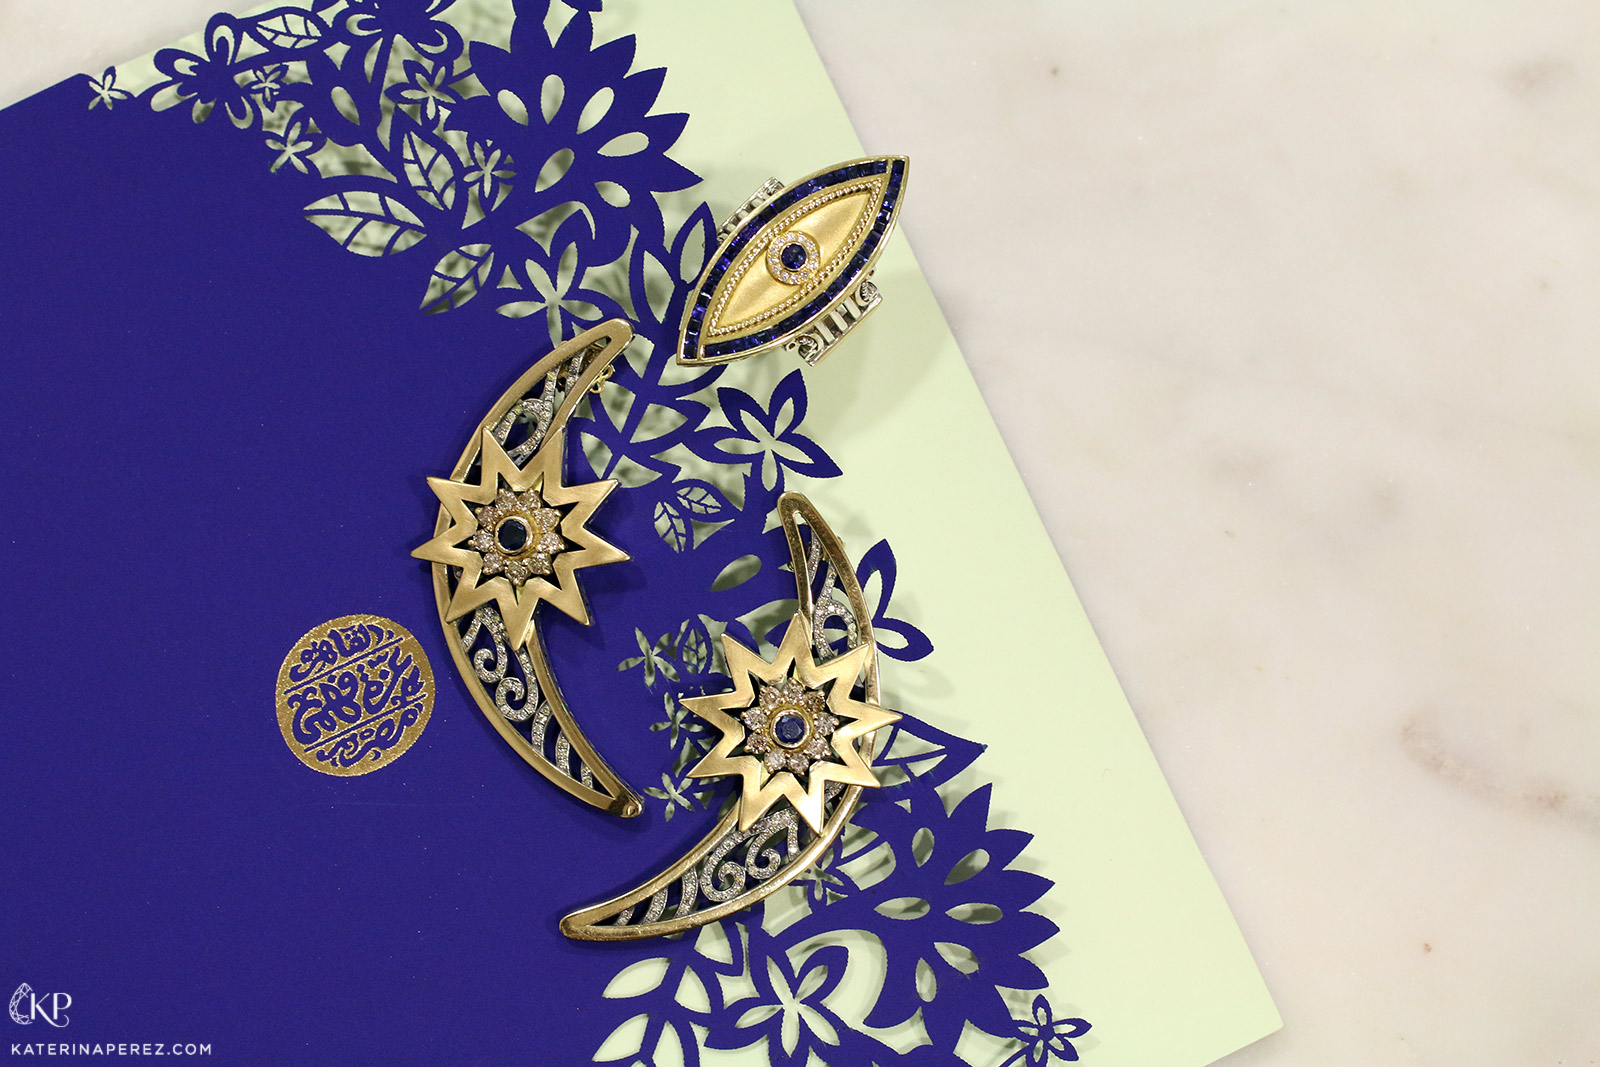 Azza Fahmy The Gypse collection earrings and ring in yellow gold with diamonds and sapphires